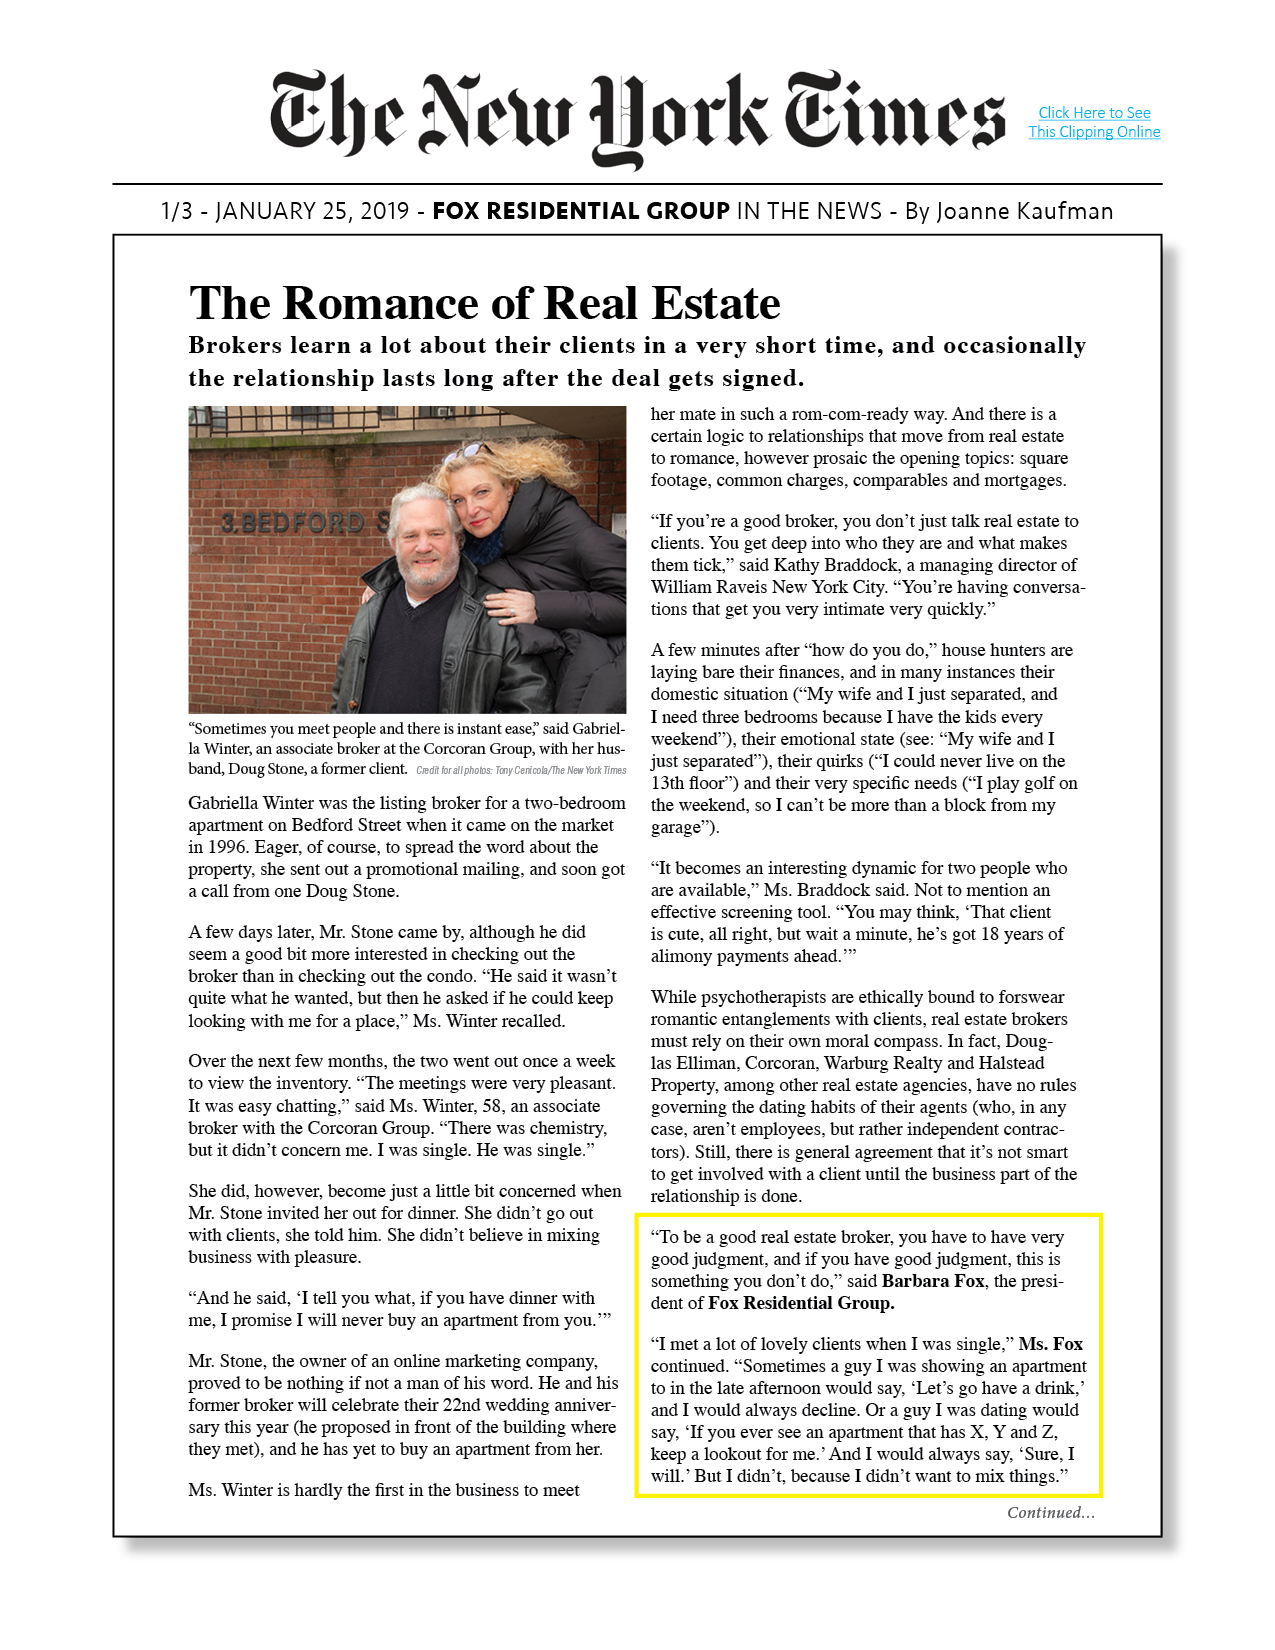 012519-NYT-OL-FOX-The Romance of Real Es